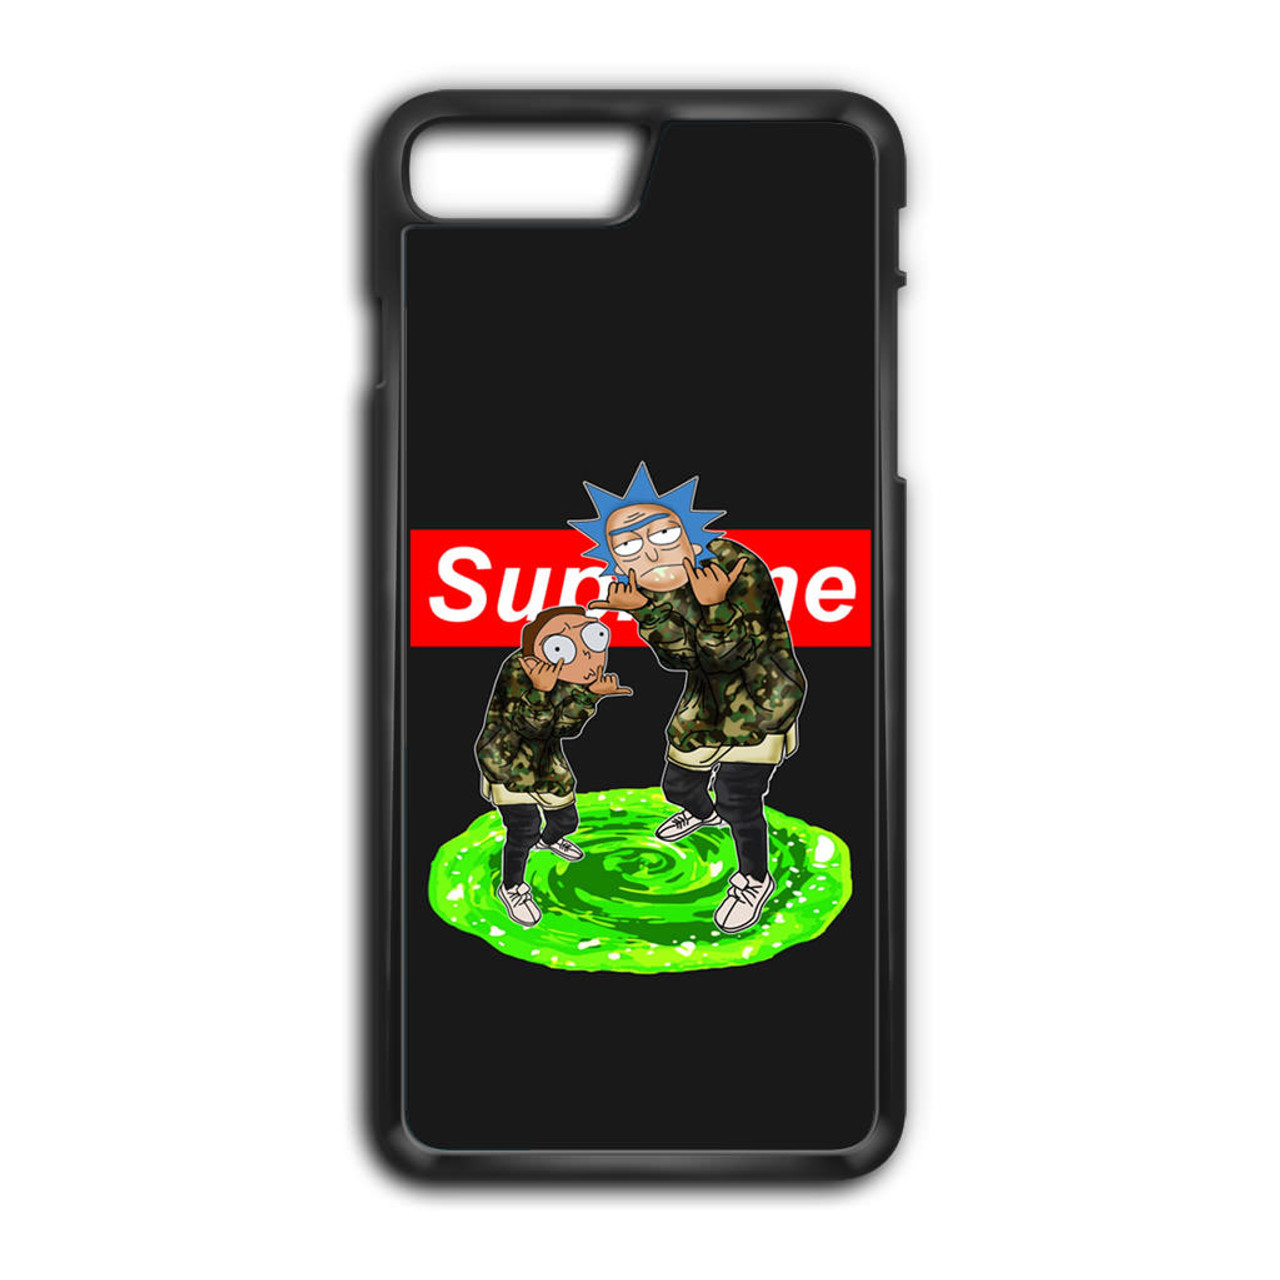 Rick and Morty Supreme iPhone 7 Plus Case